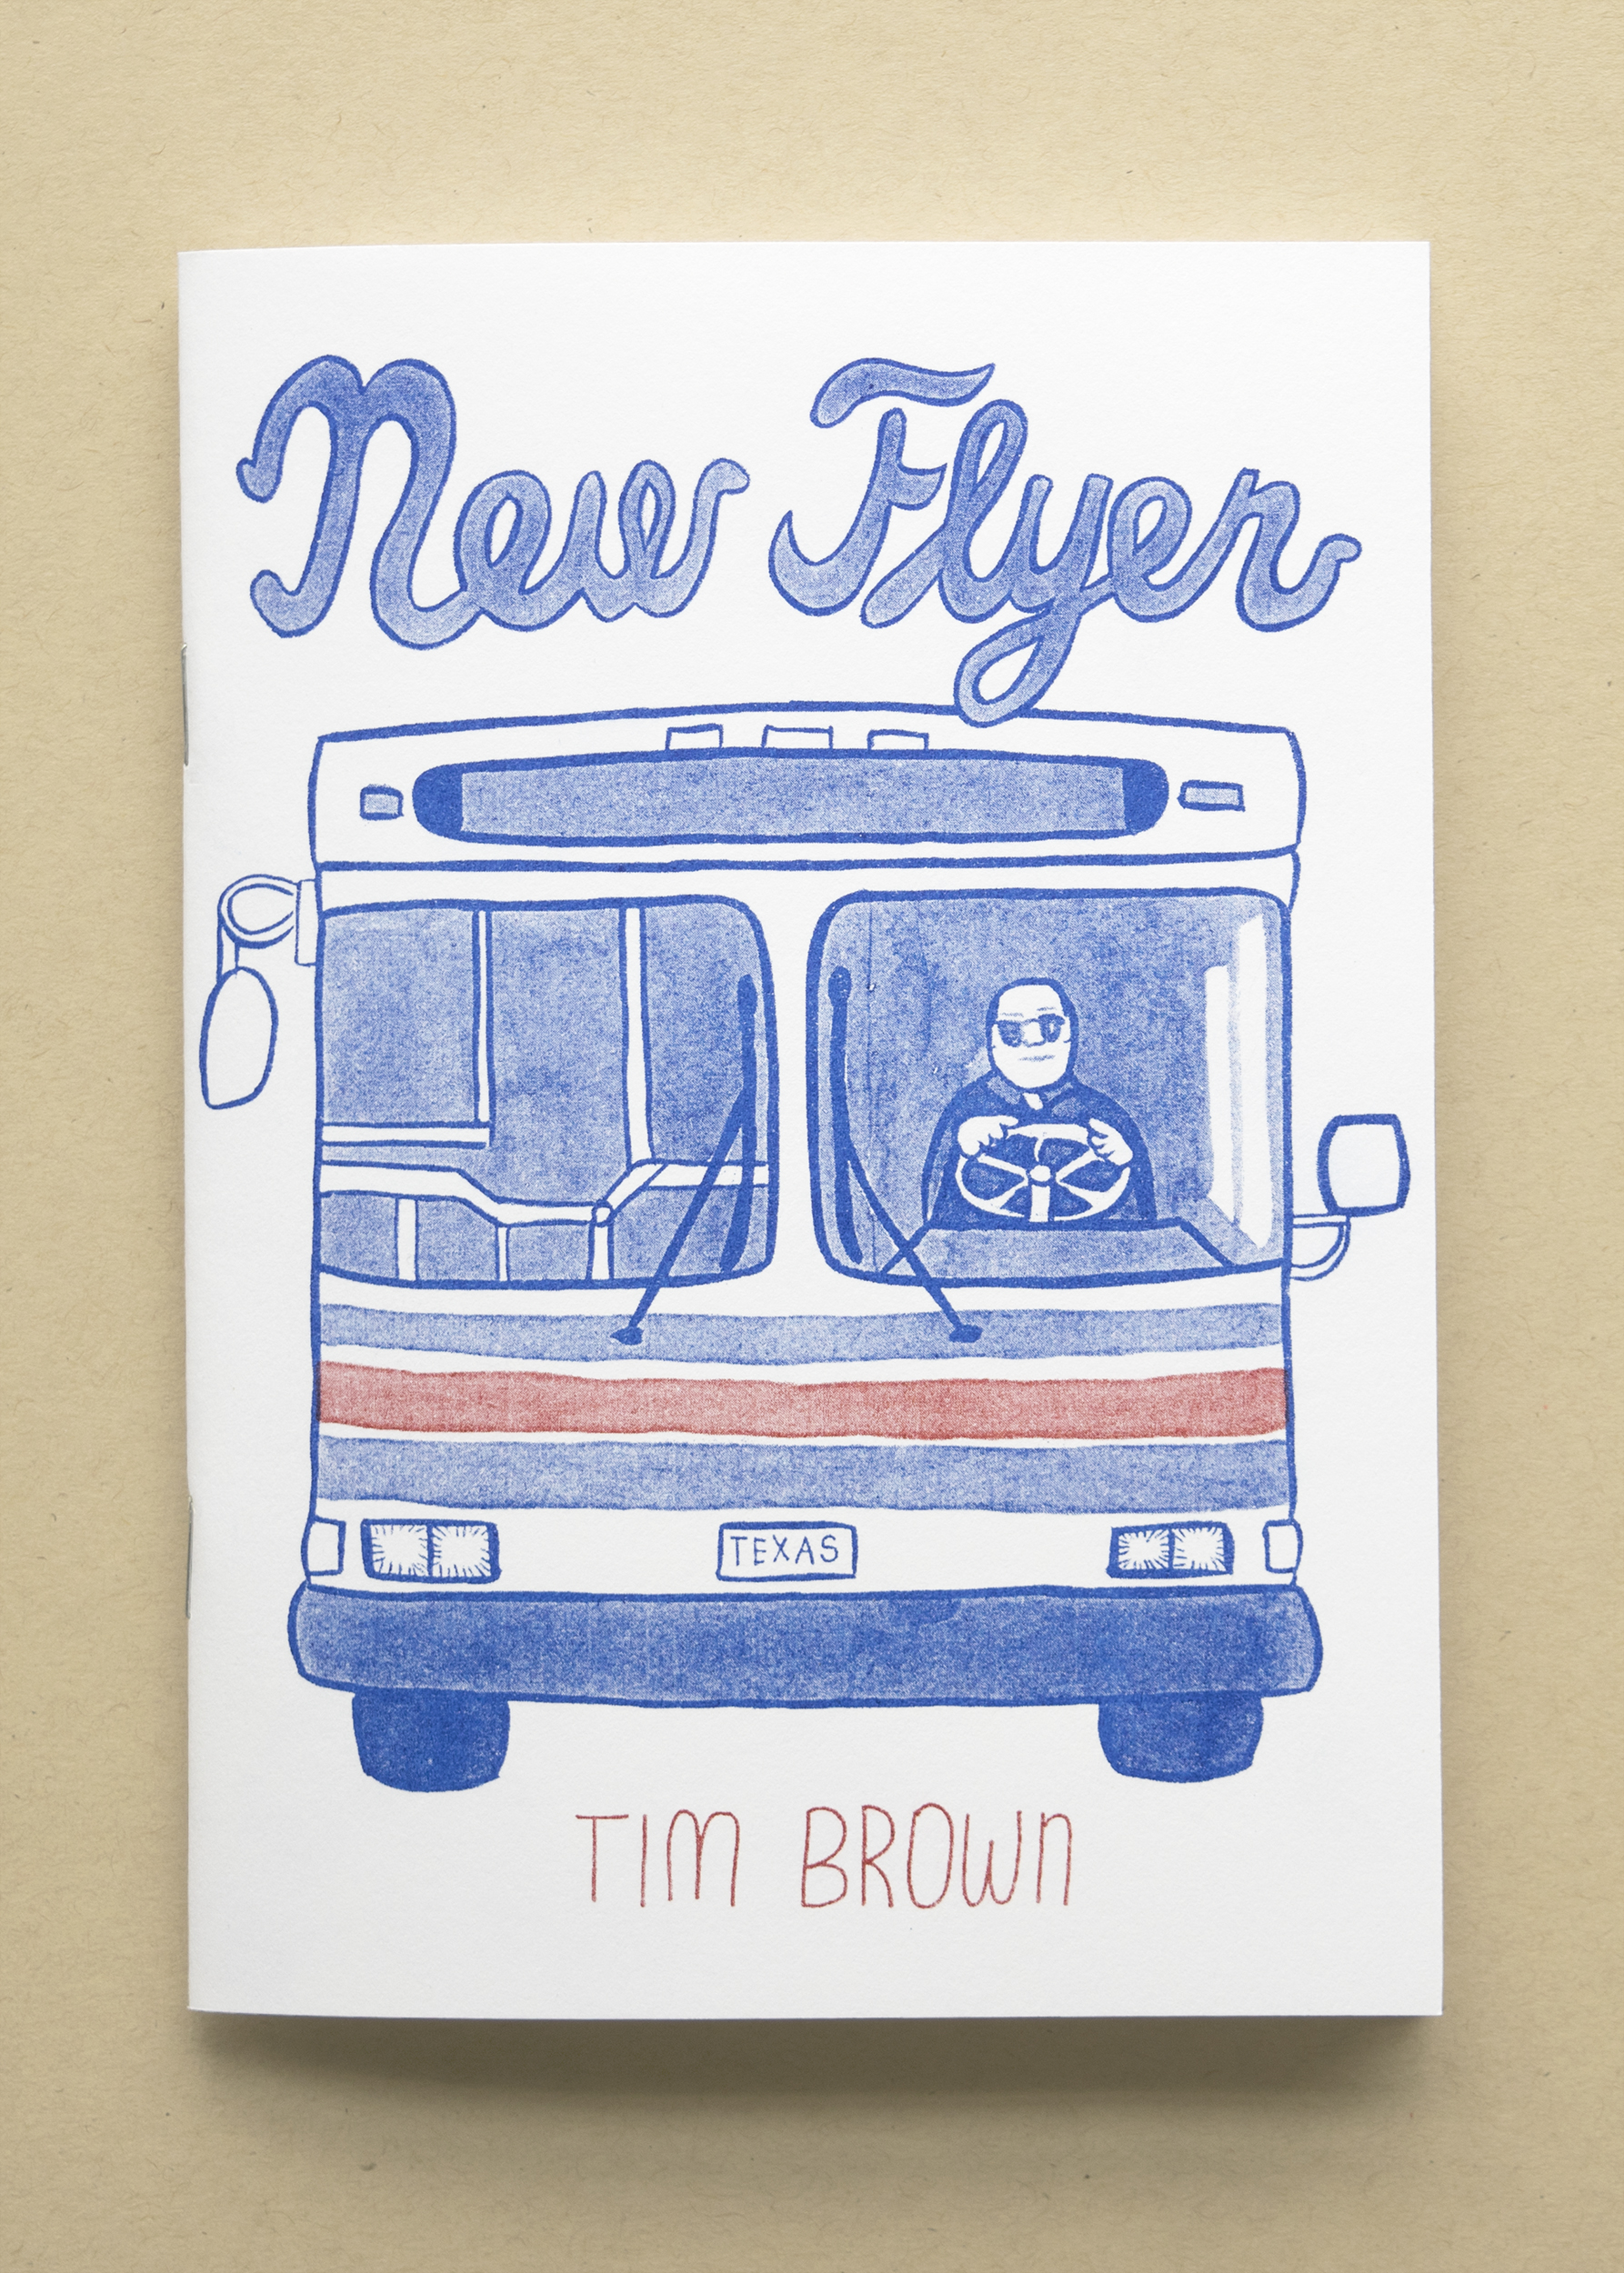 New Flyer by Tim Brown